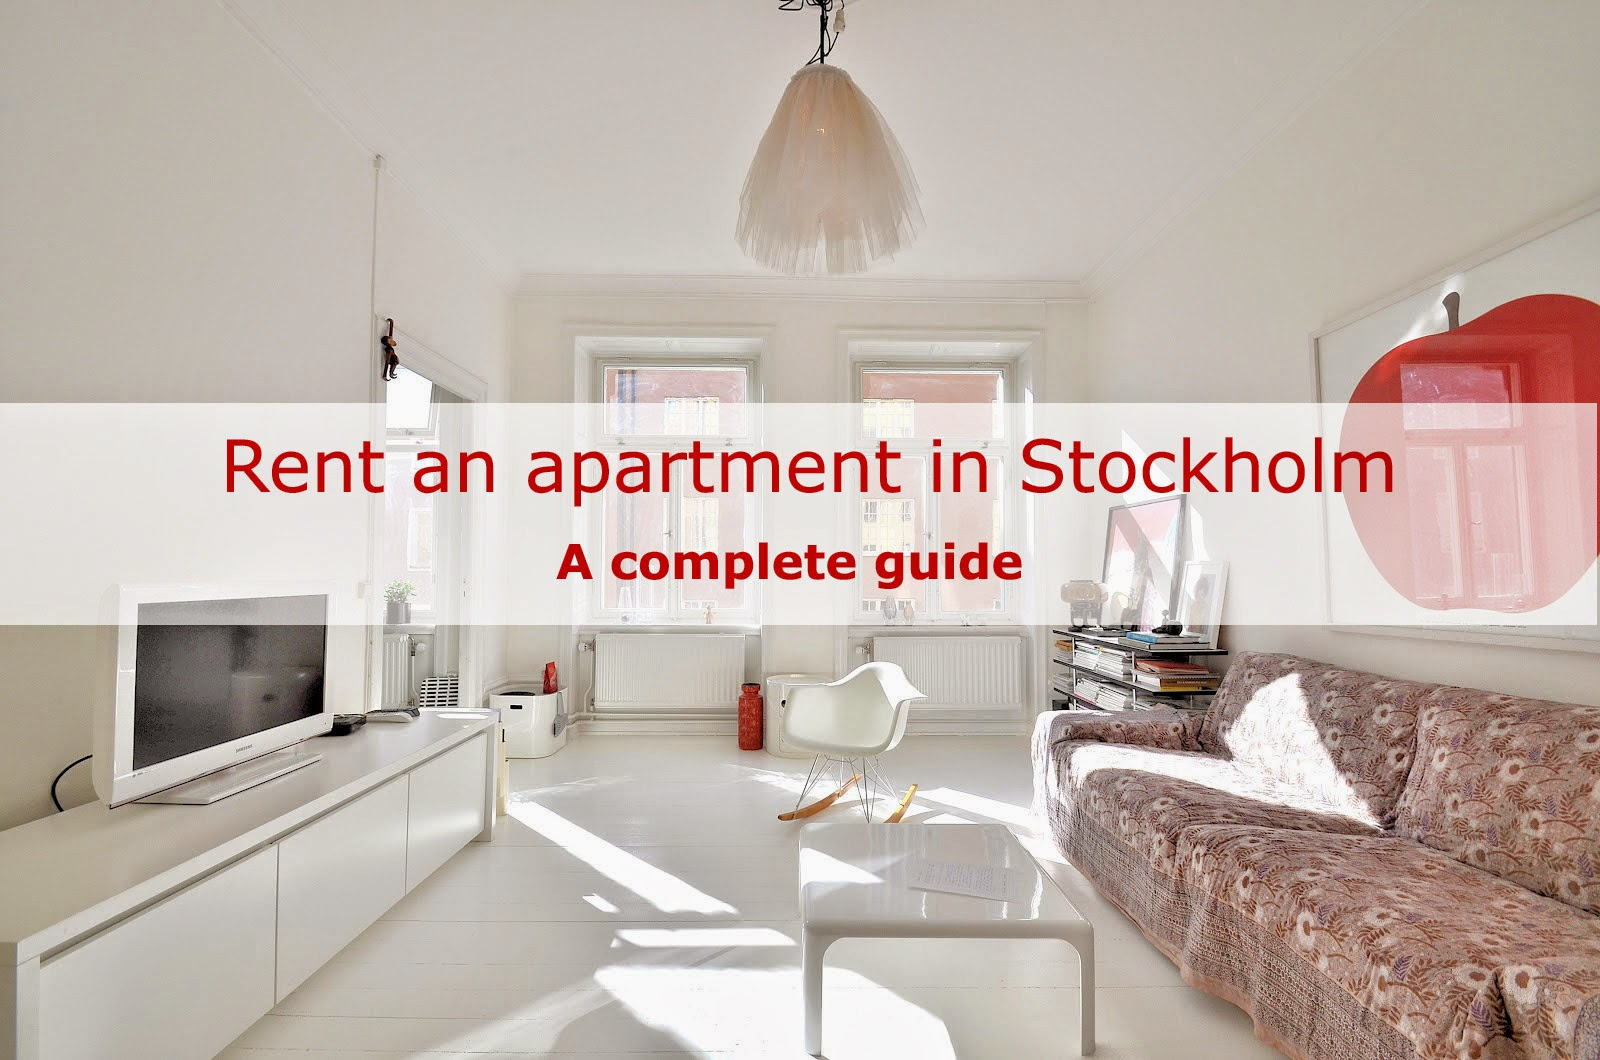 How To Rent An Apartment In Stockholm